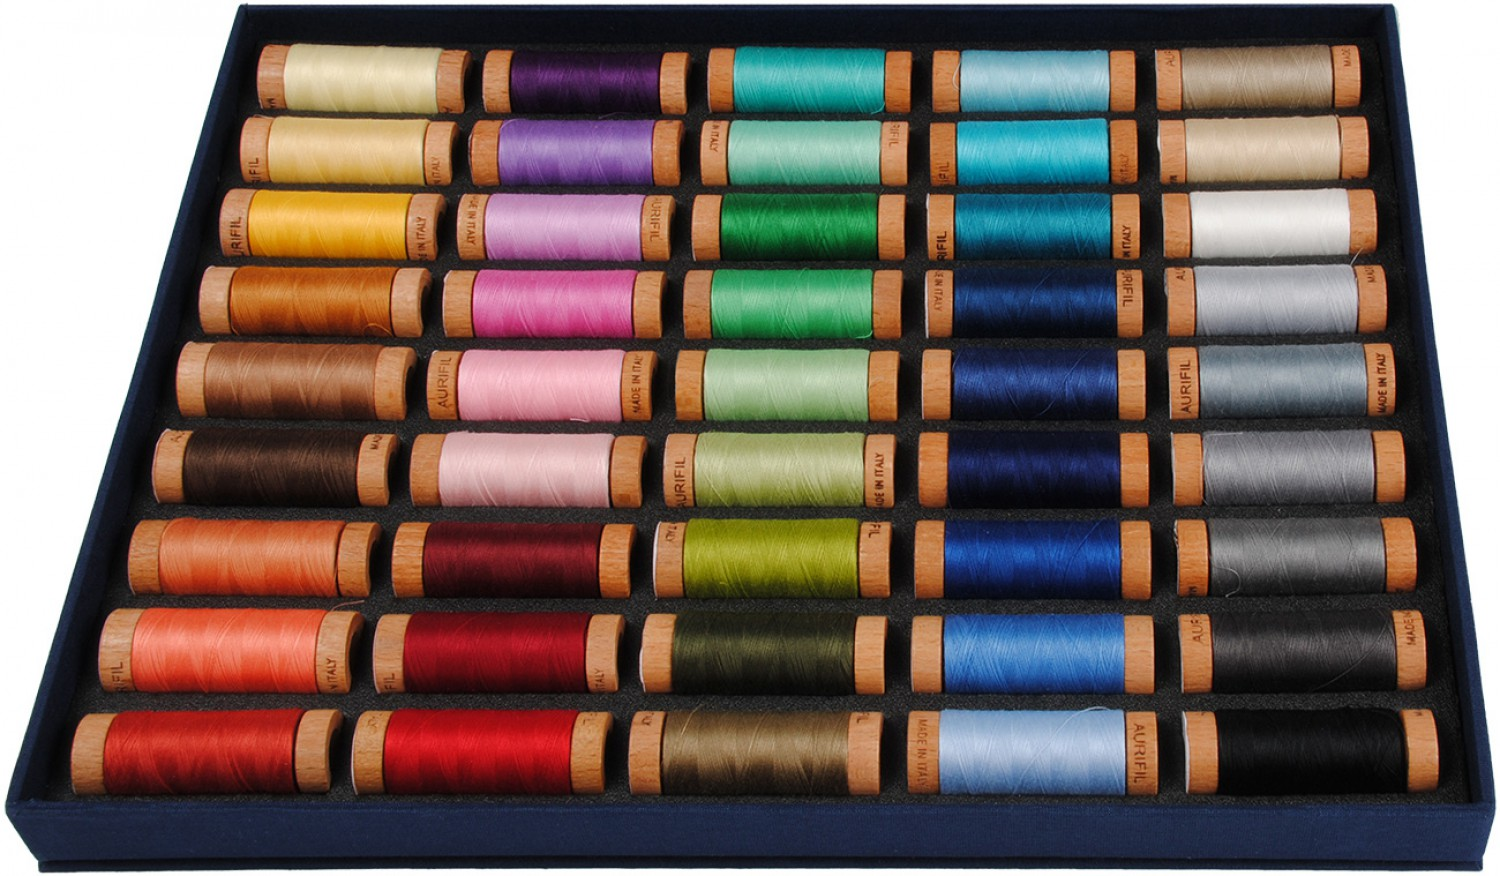 Aurifil Best Selection 80wt Cotton Thread Set - 45 Small Spools